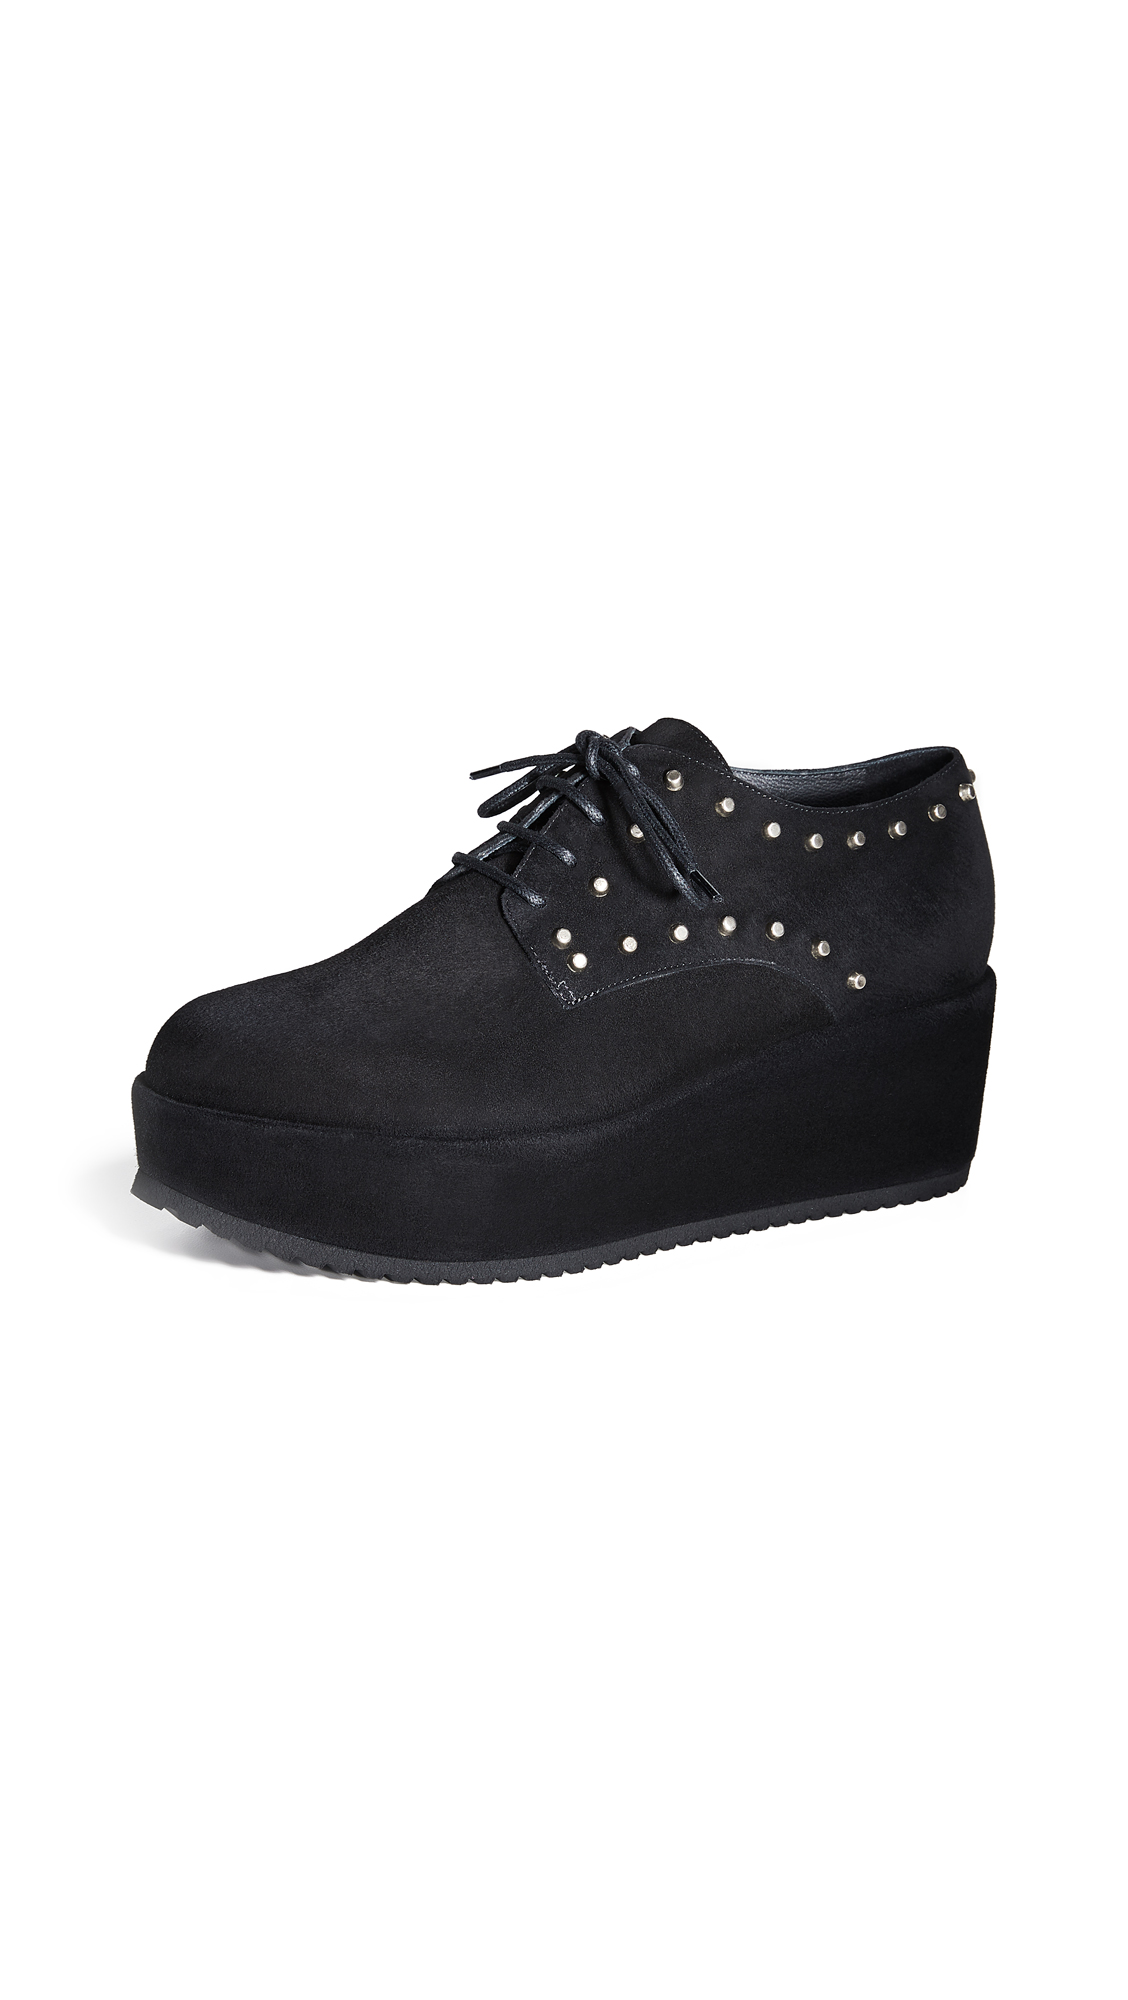 LD Tuttle The Tone Platform Studs